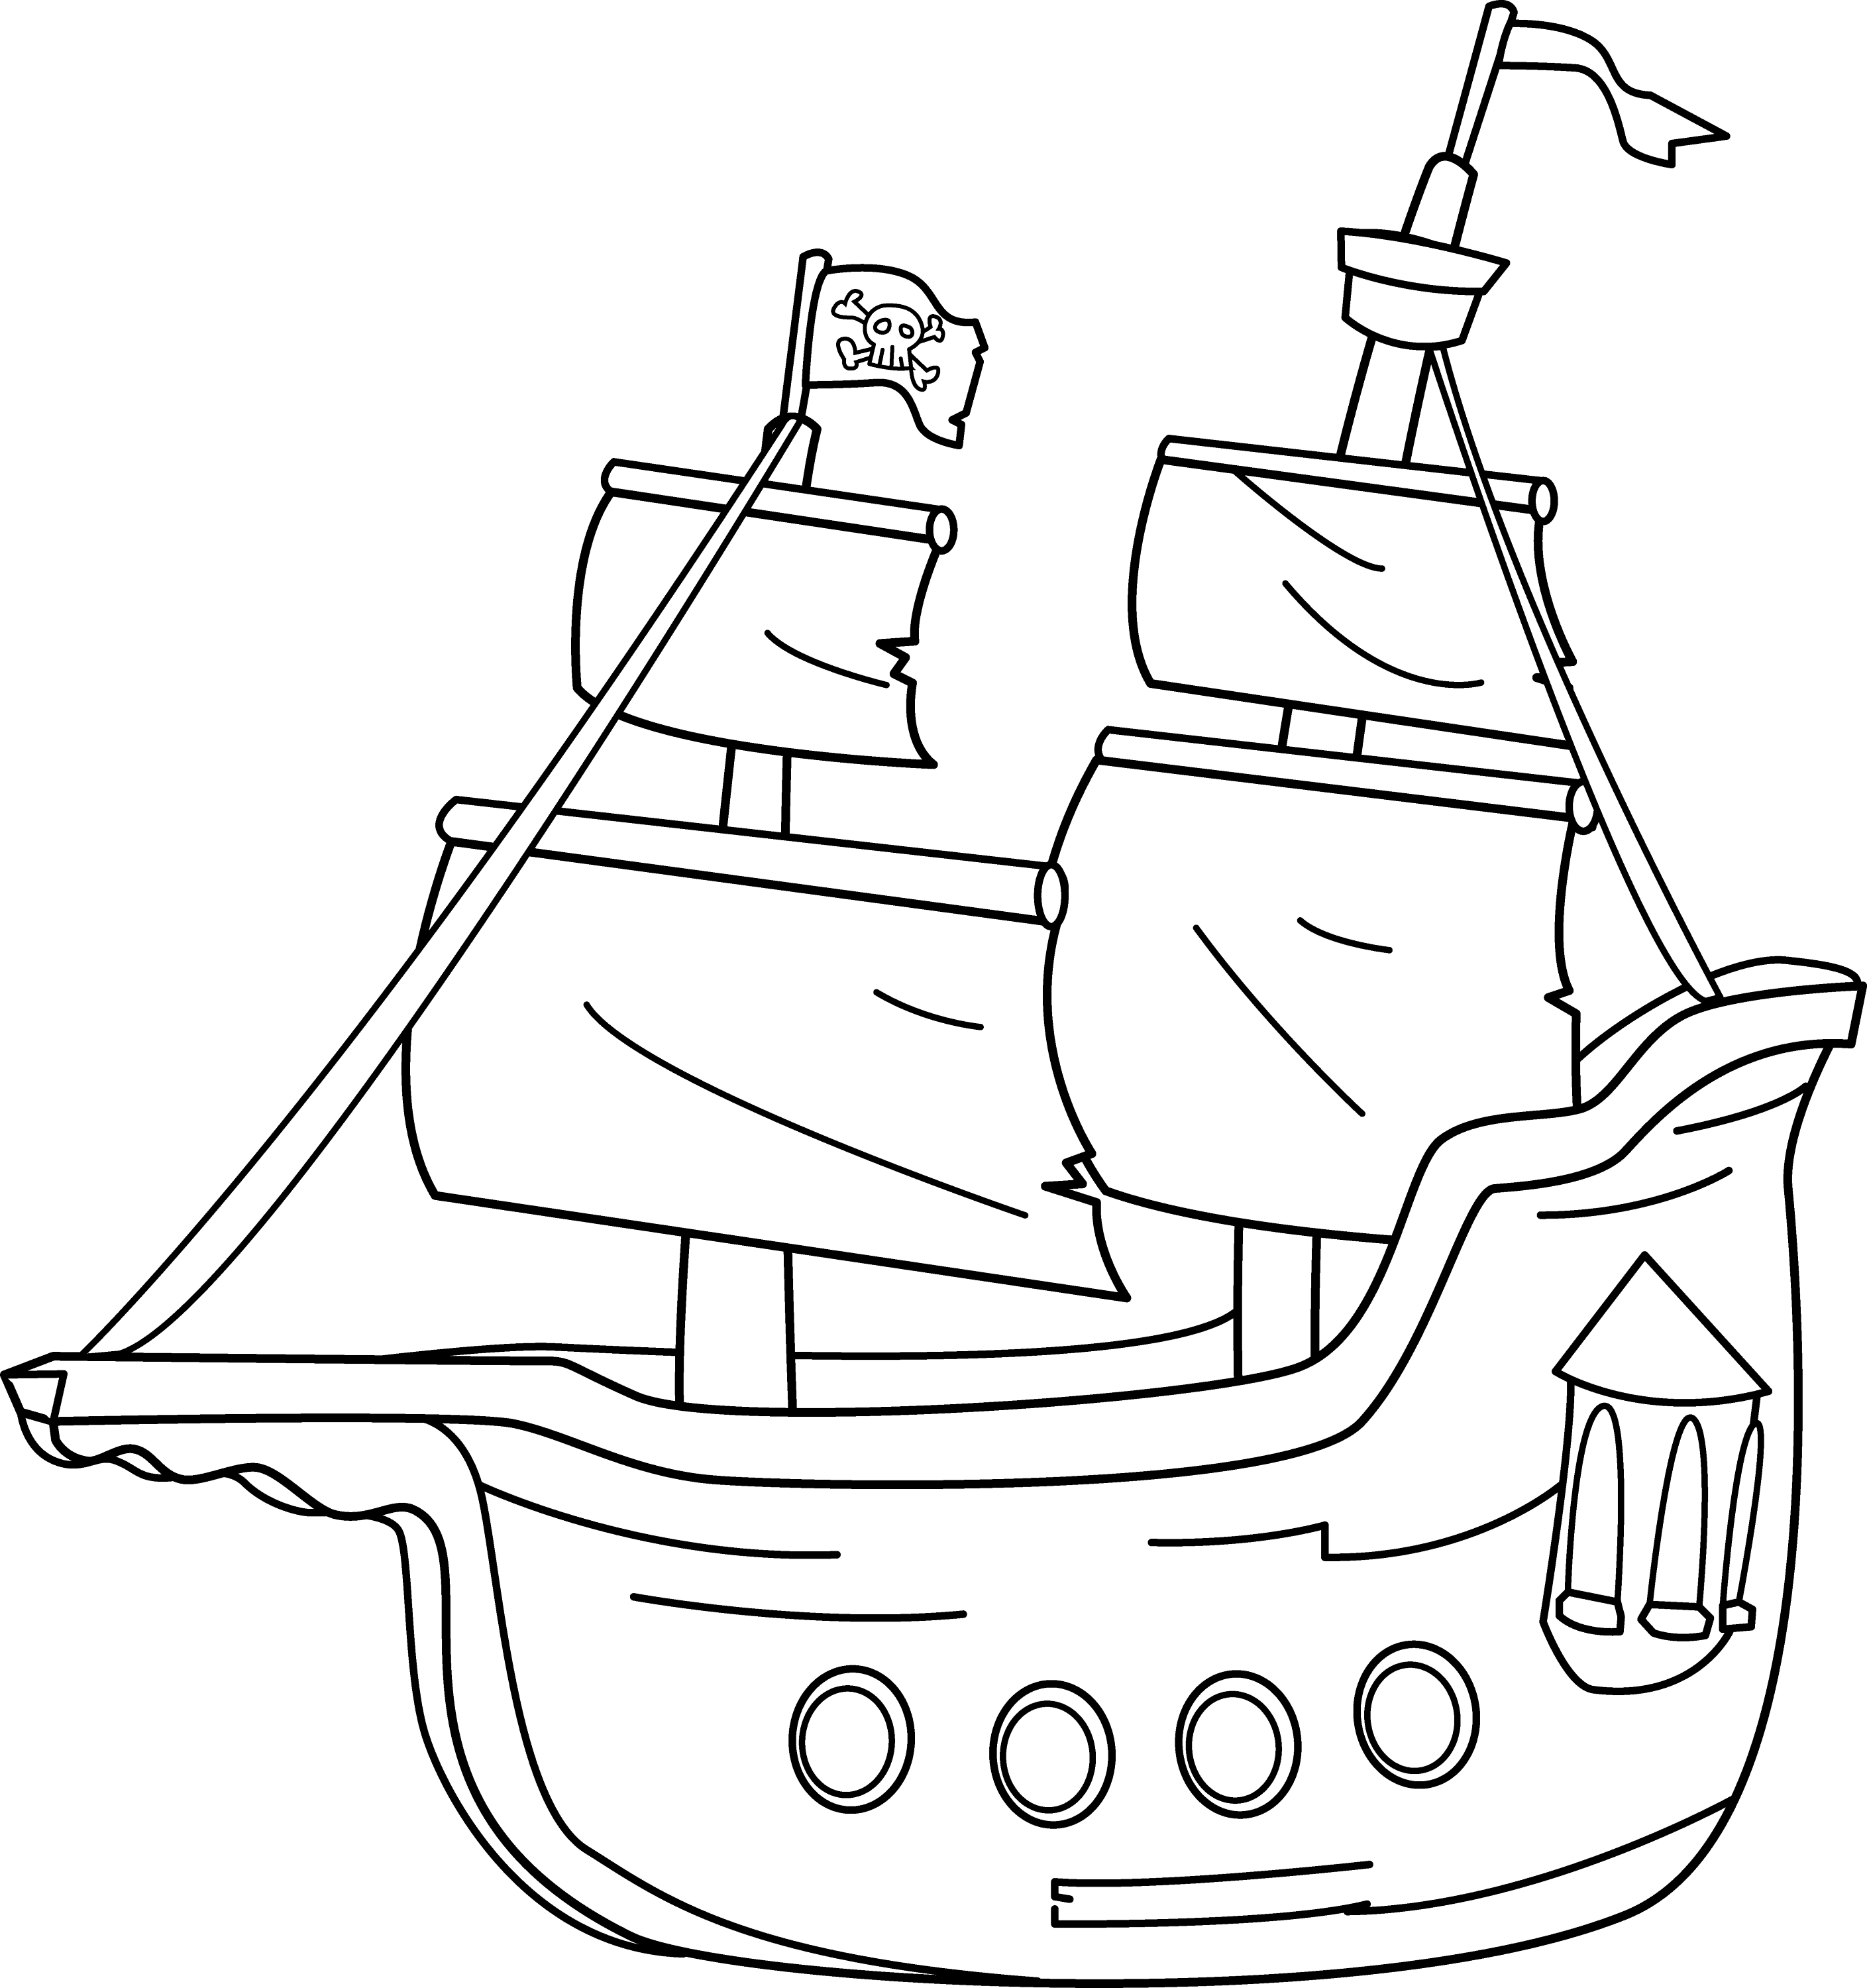 colour in pirate ship pirate ship coloring page woo jr kids activities in pirate colour ship